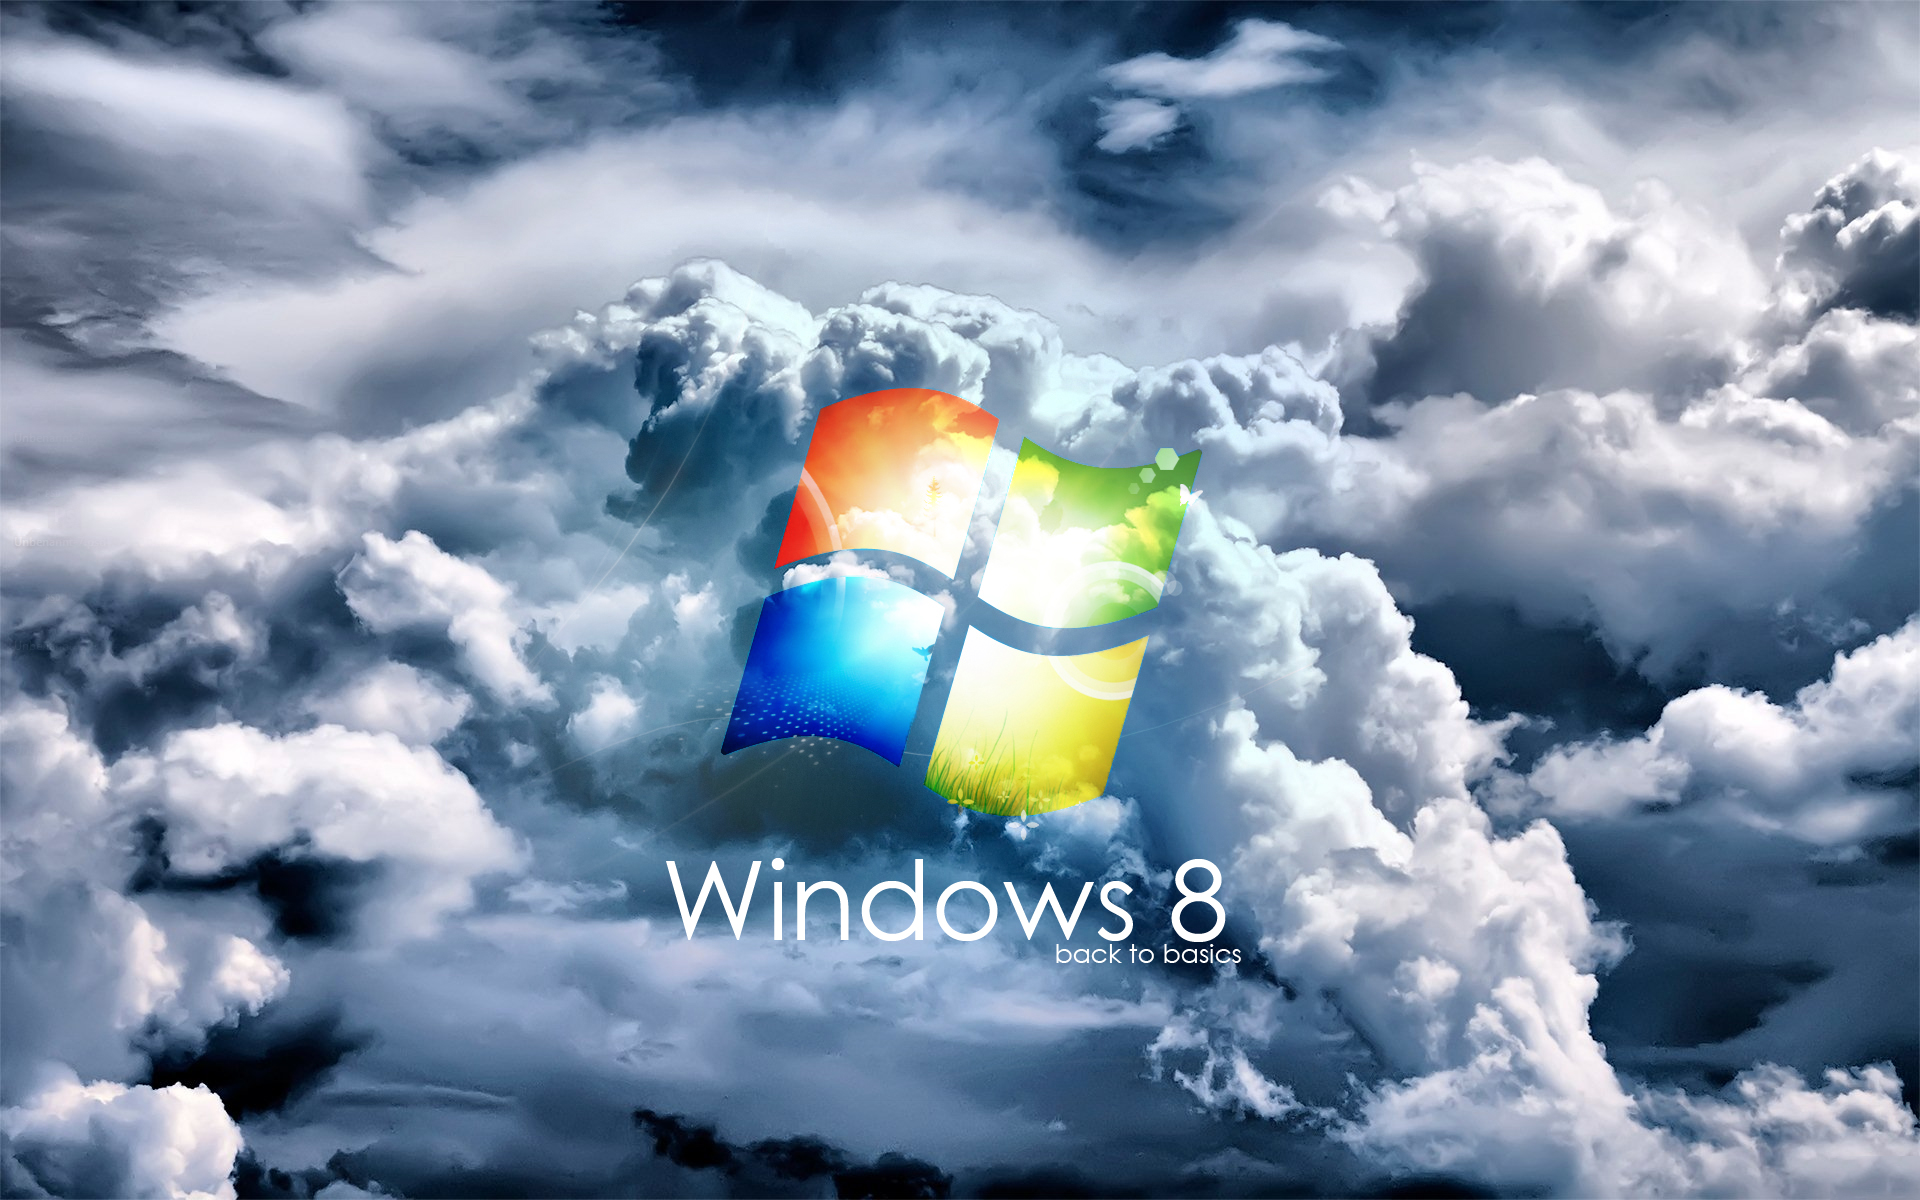 Windows 8 Wallpaper by AionXhundred